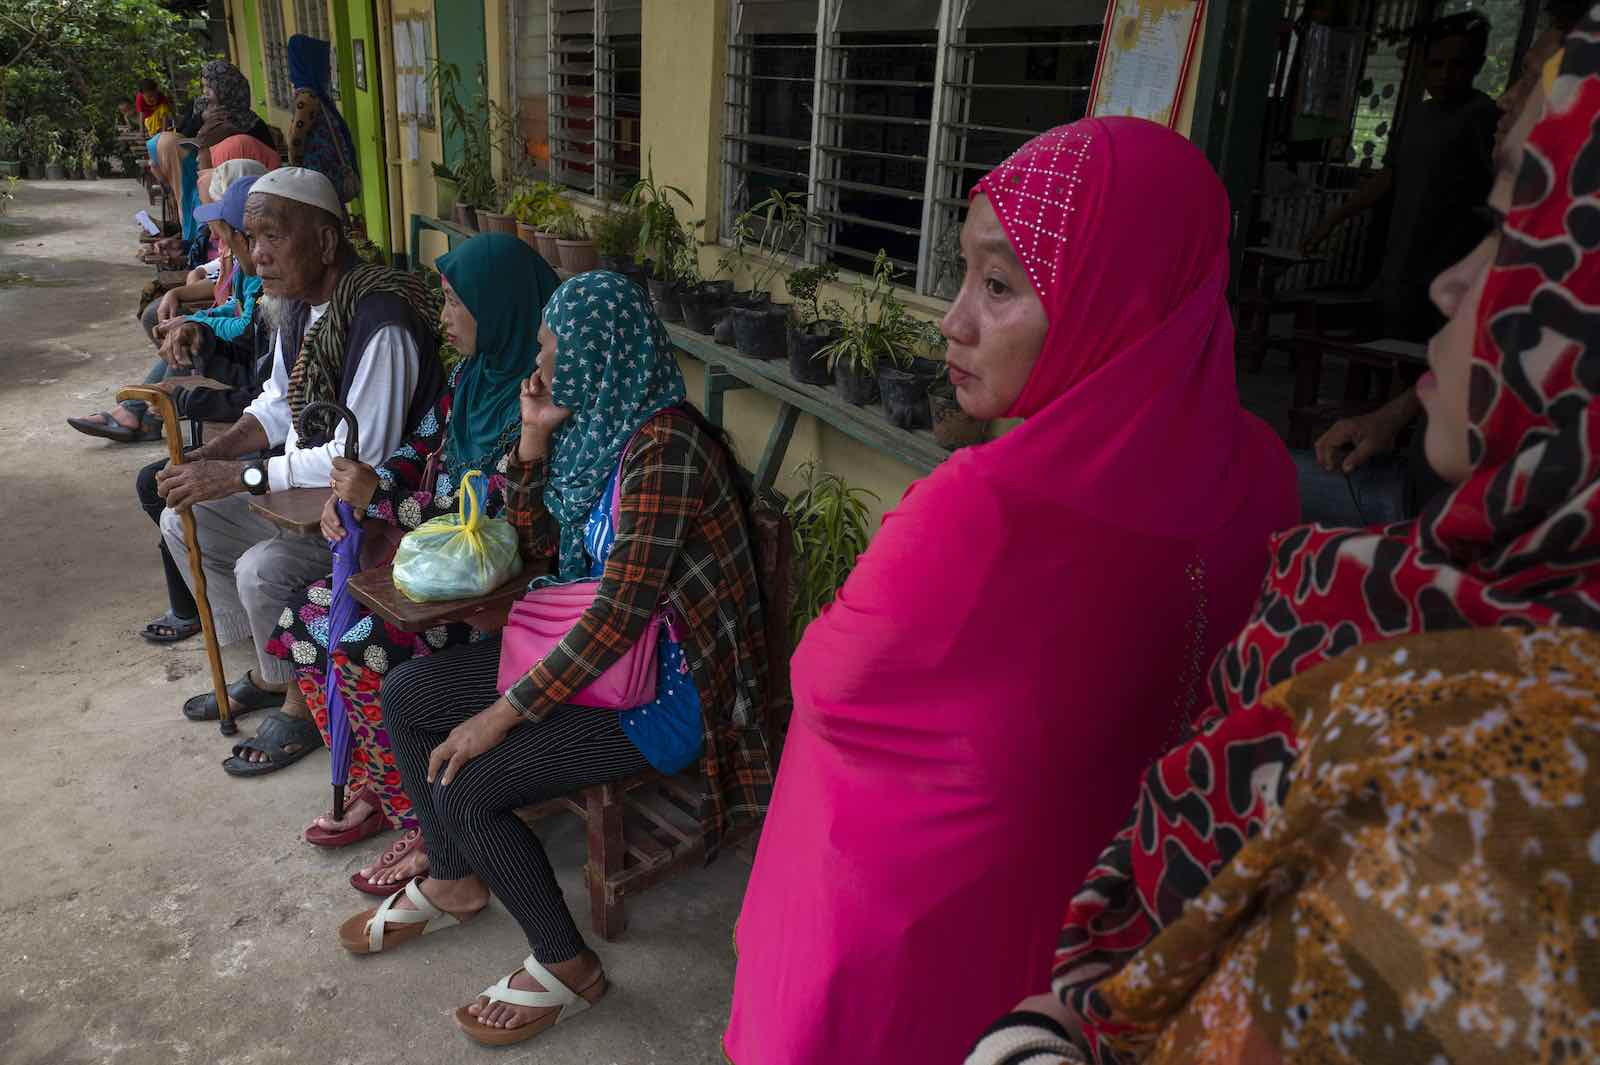 Residents wait to vote on an autonomy referendum, 6 February 2019, Salvador, Lanao del Norte, southern Philippines (Jes Aznar/Getty Images)